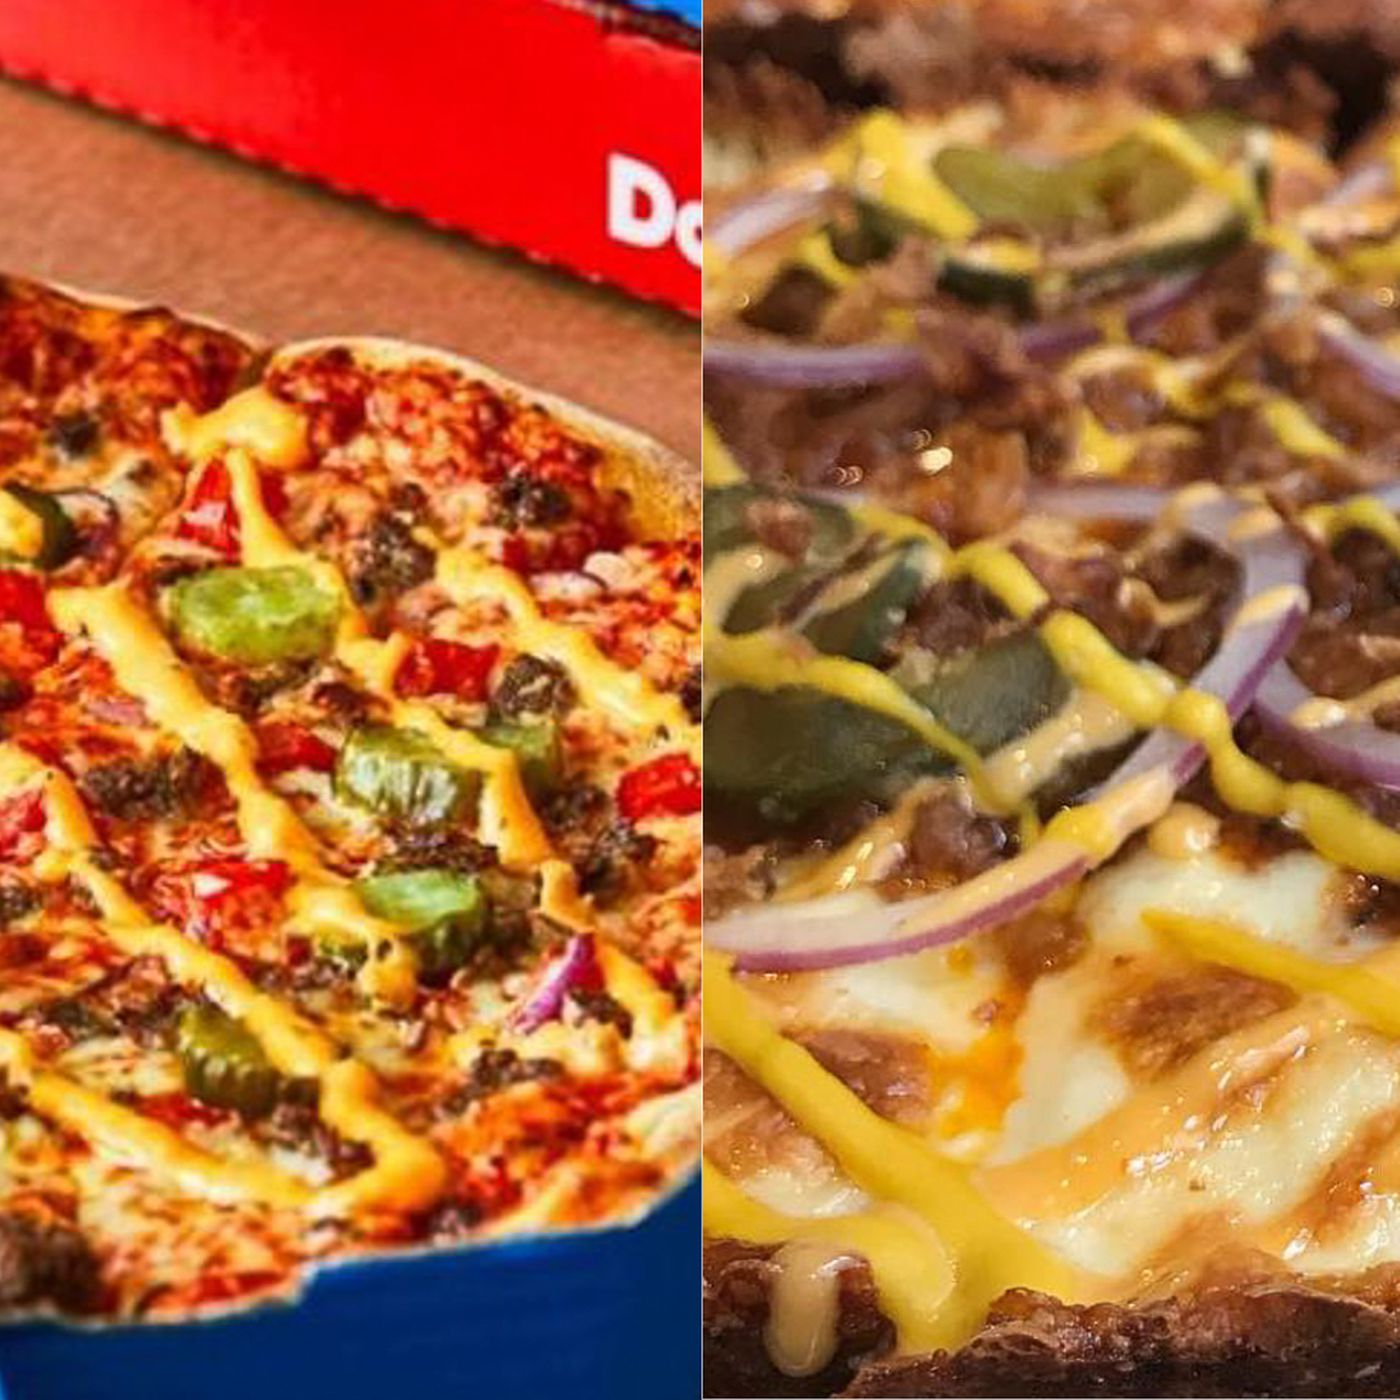 Dominos Cheeseburger Pizza Is Inspired By London Restaurant